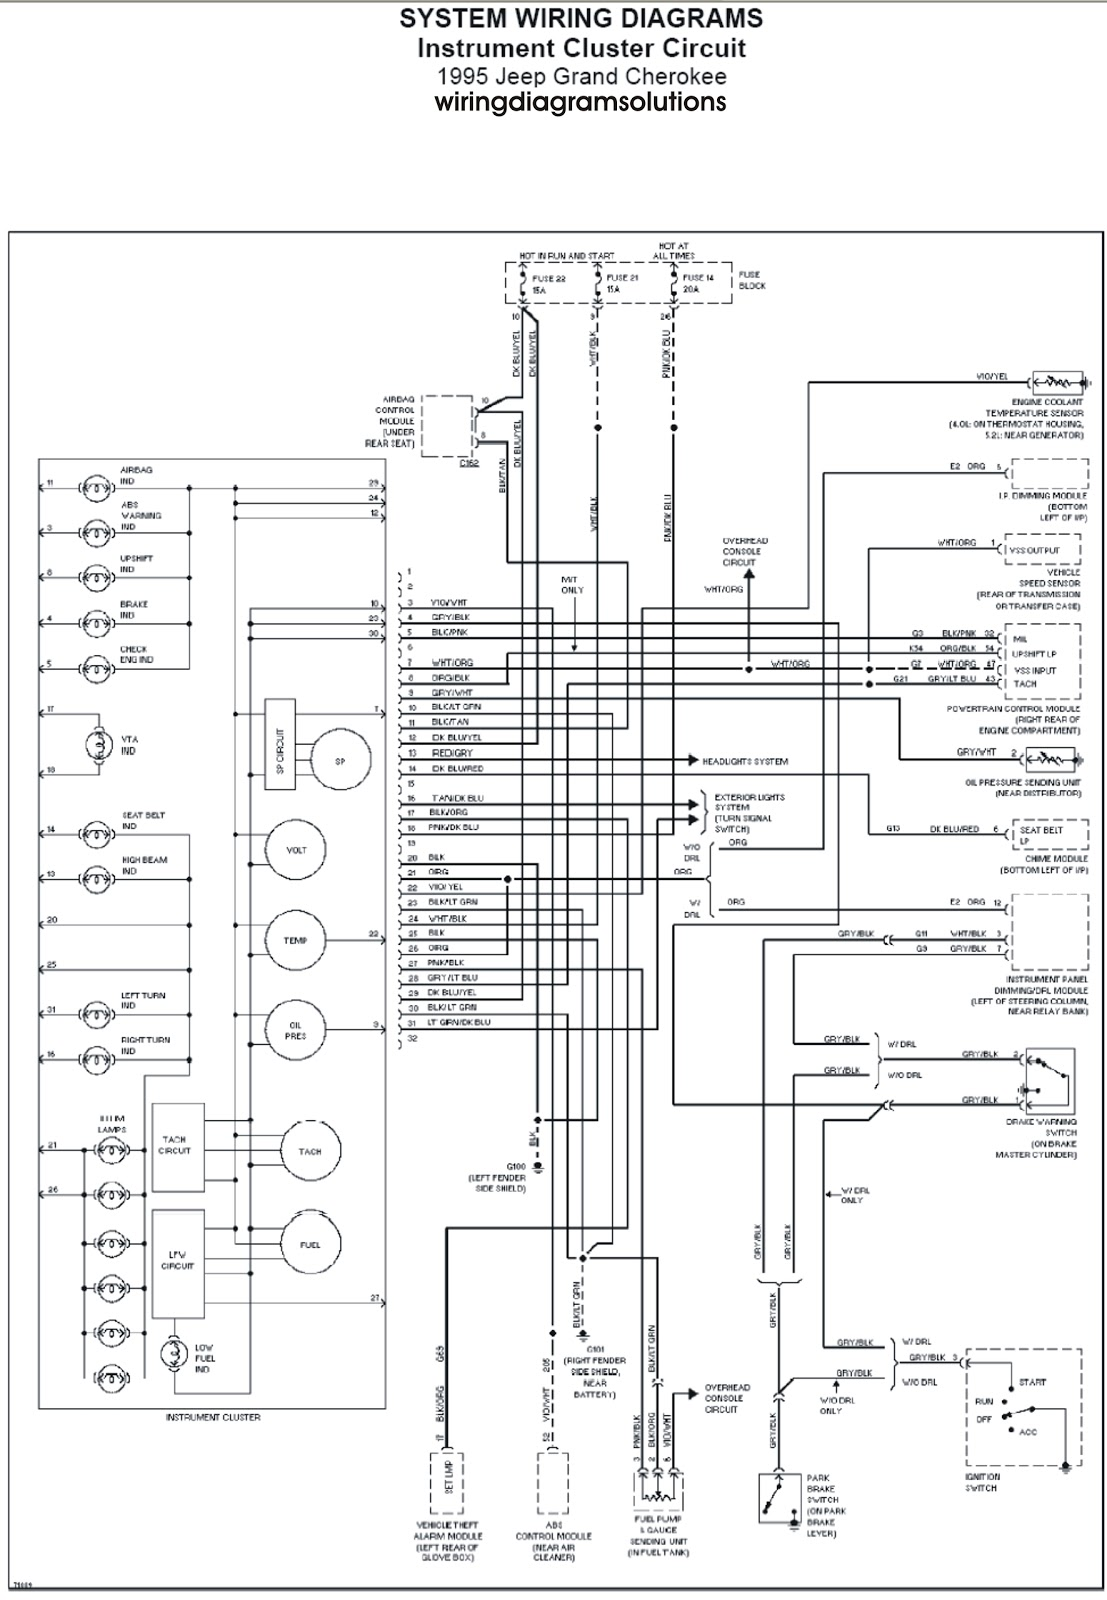 97 Jeep Grand Cherokee Wiring Diagram from 3.bp.blogspot.com